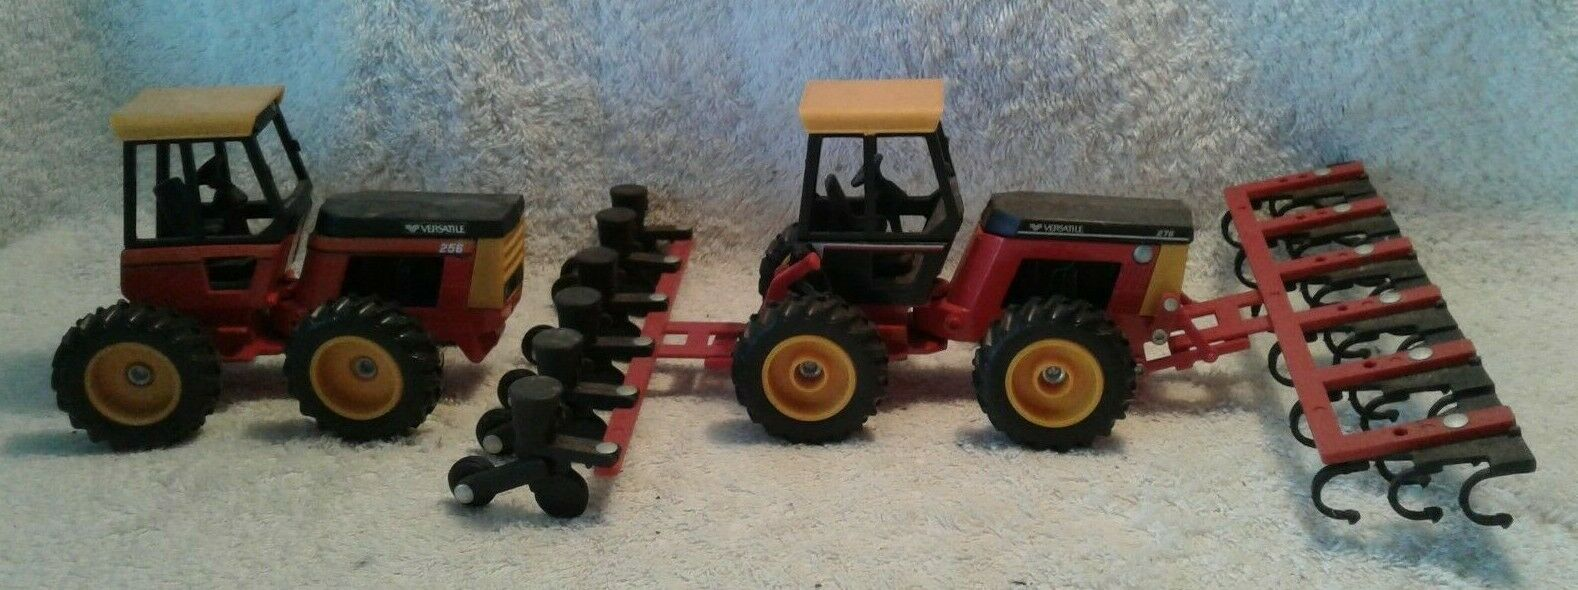 2 Scale Models 1 32 Versatile Tractors 276 Cultivator Planter & 256 Bi-Direction